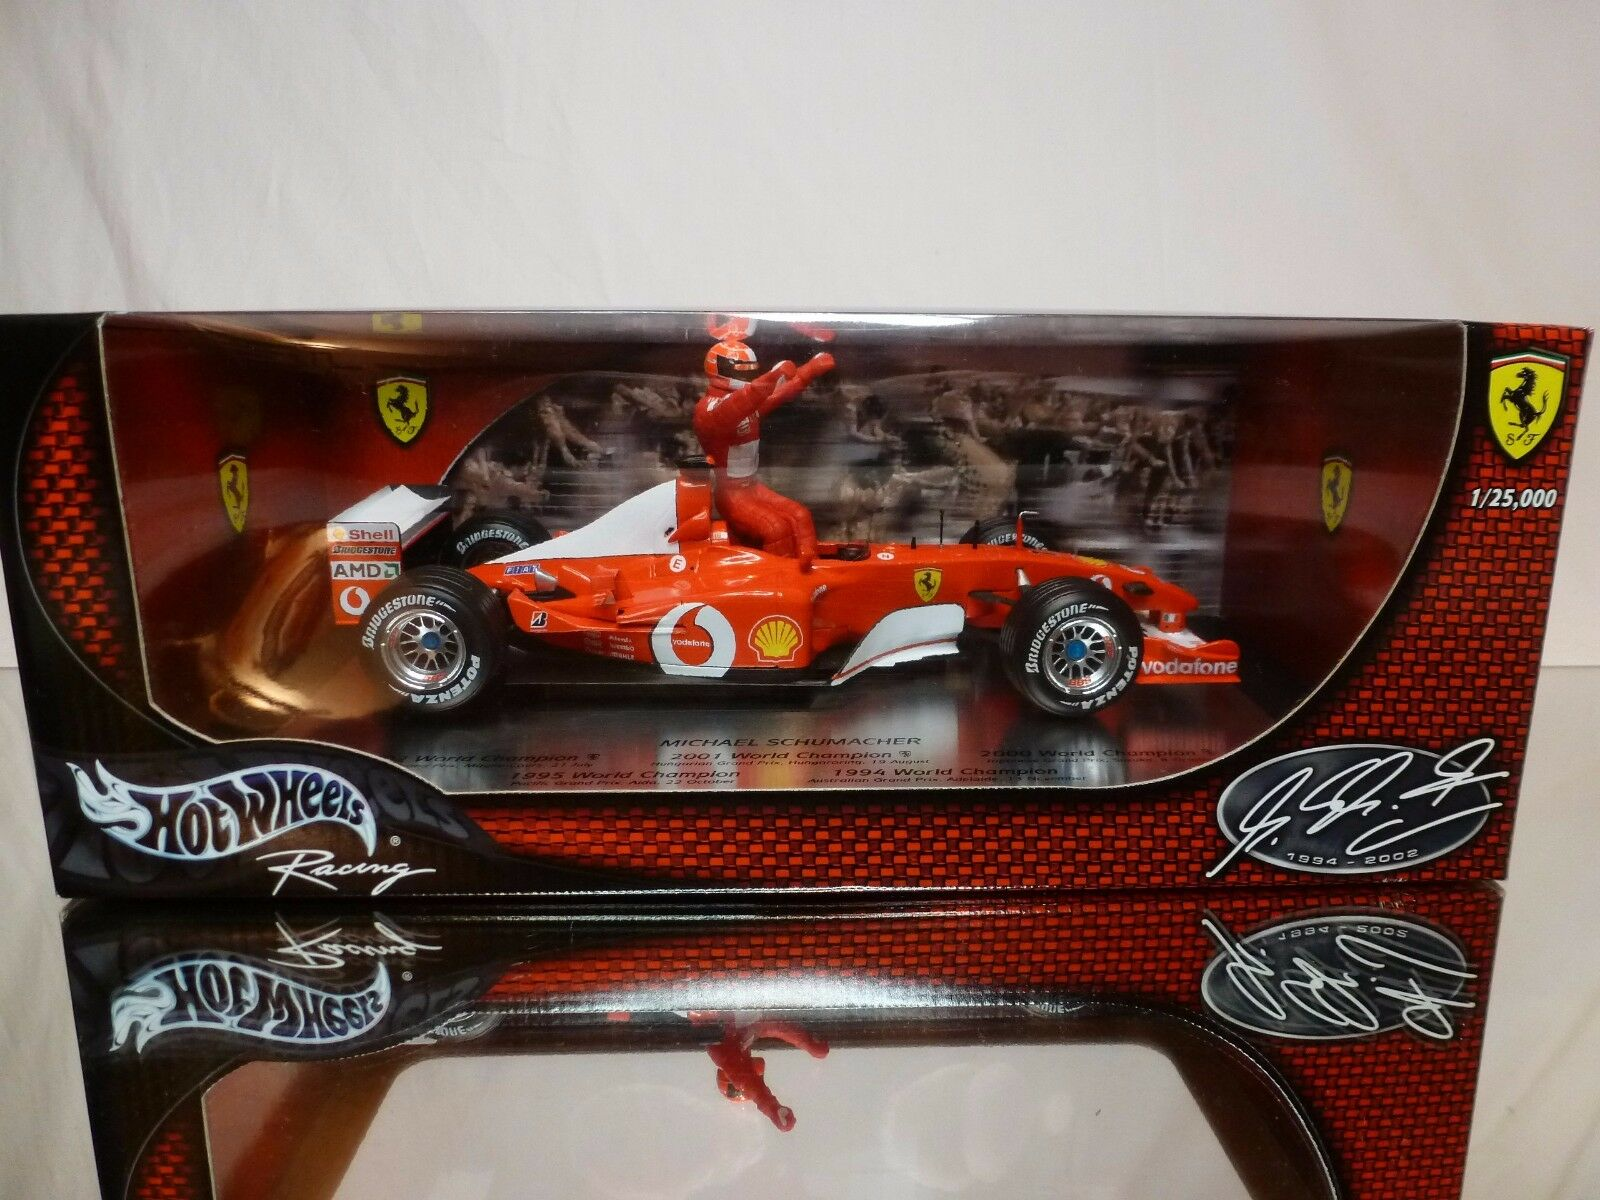 HOT WHEELS 54614 FERRARI F2002 - CHAMP - SCHUMACHER - F1 1 18 - EXCELLENT IN BOX